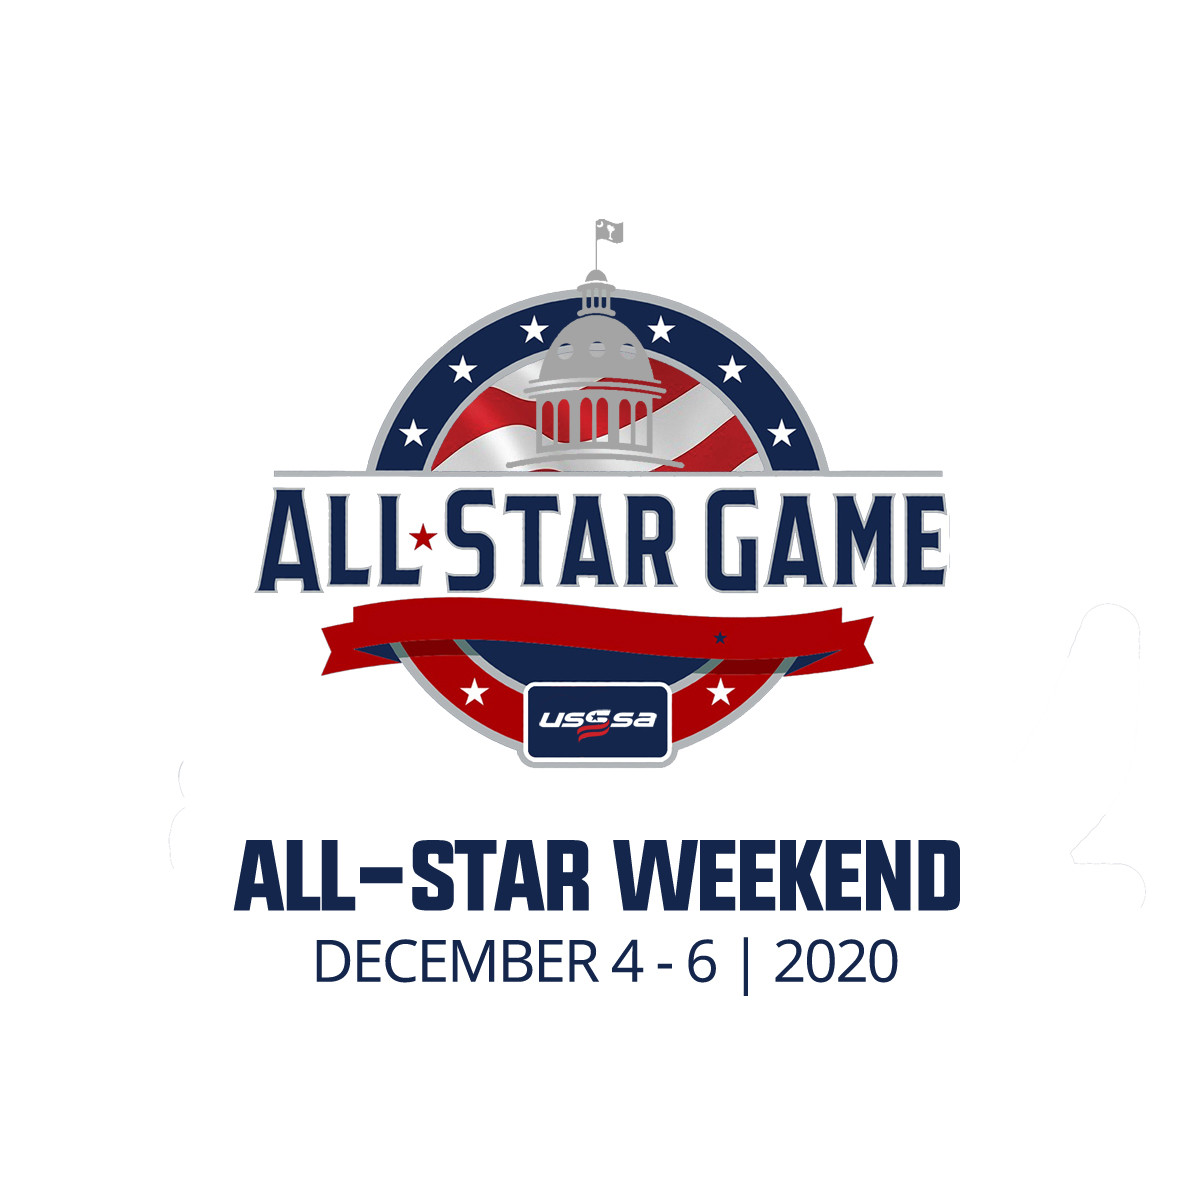 Upstate - All-Star Weekend